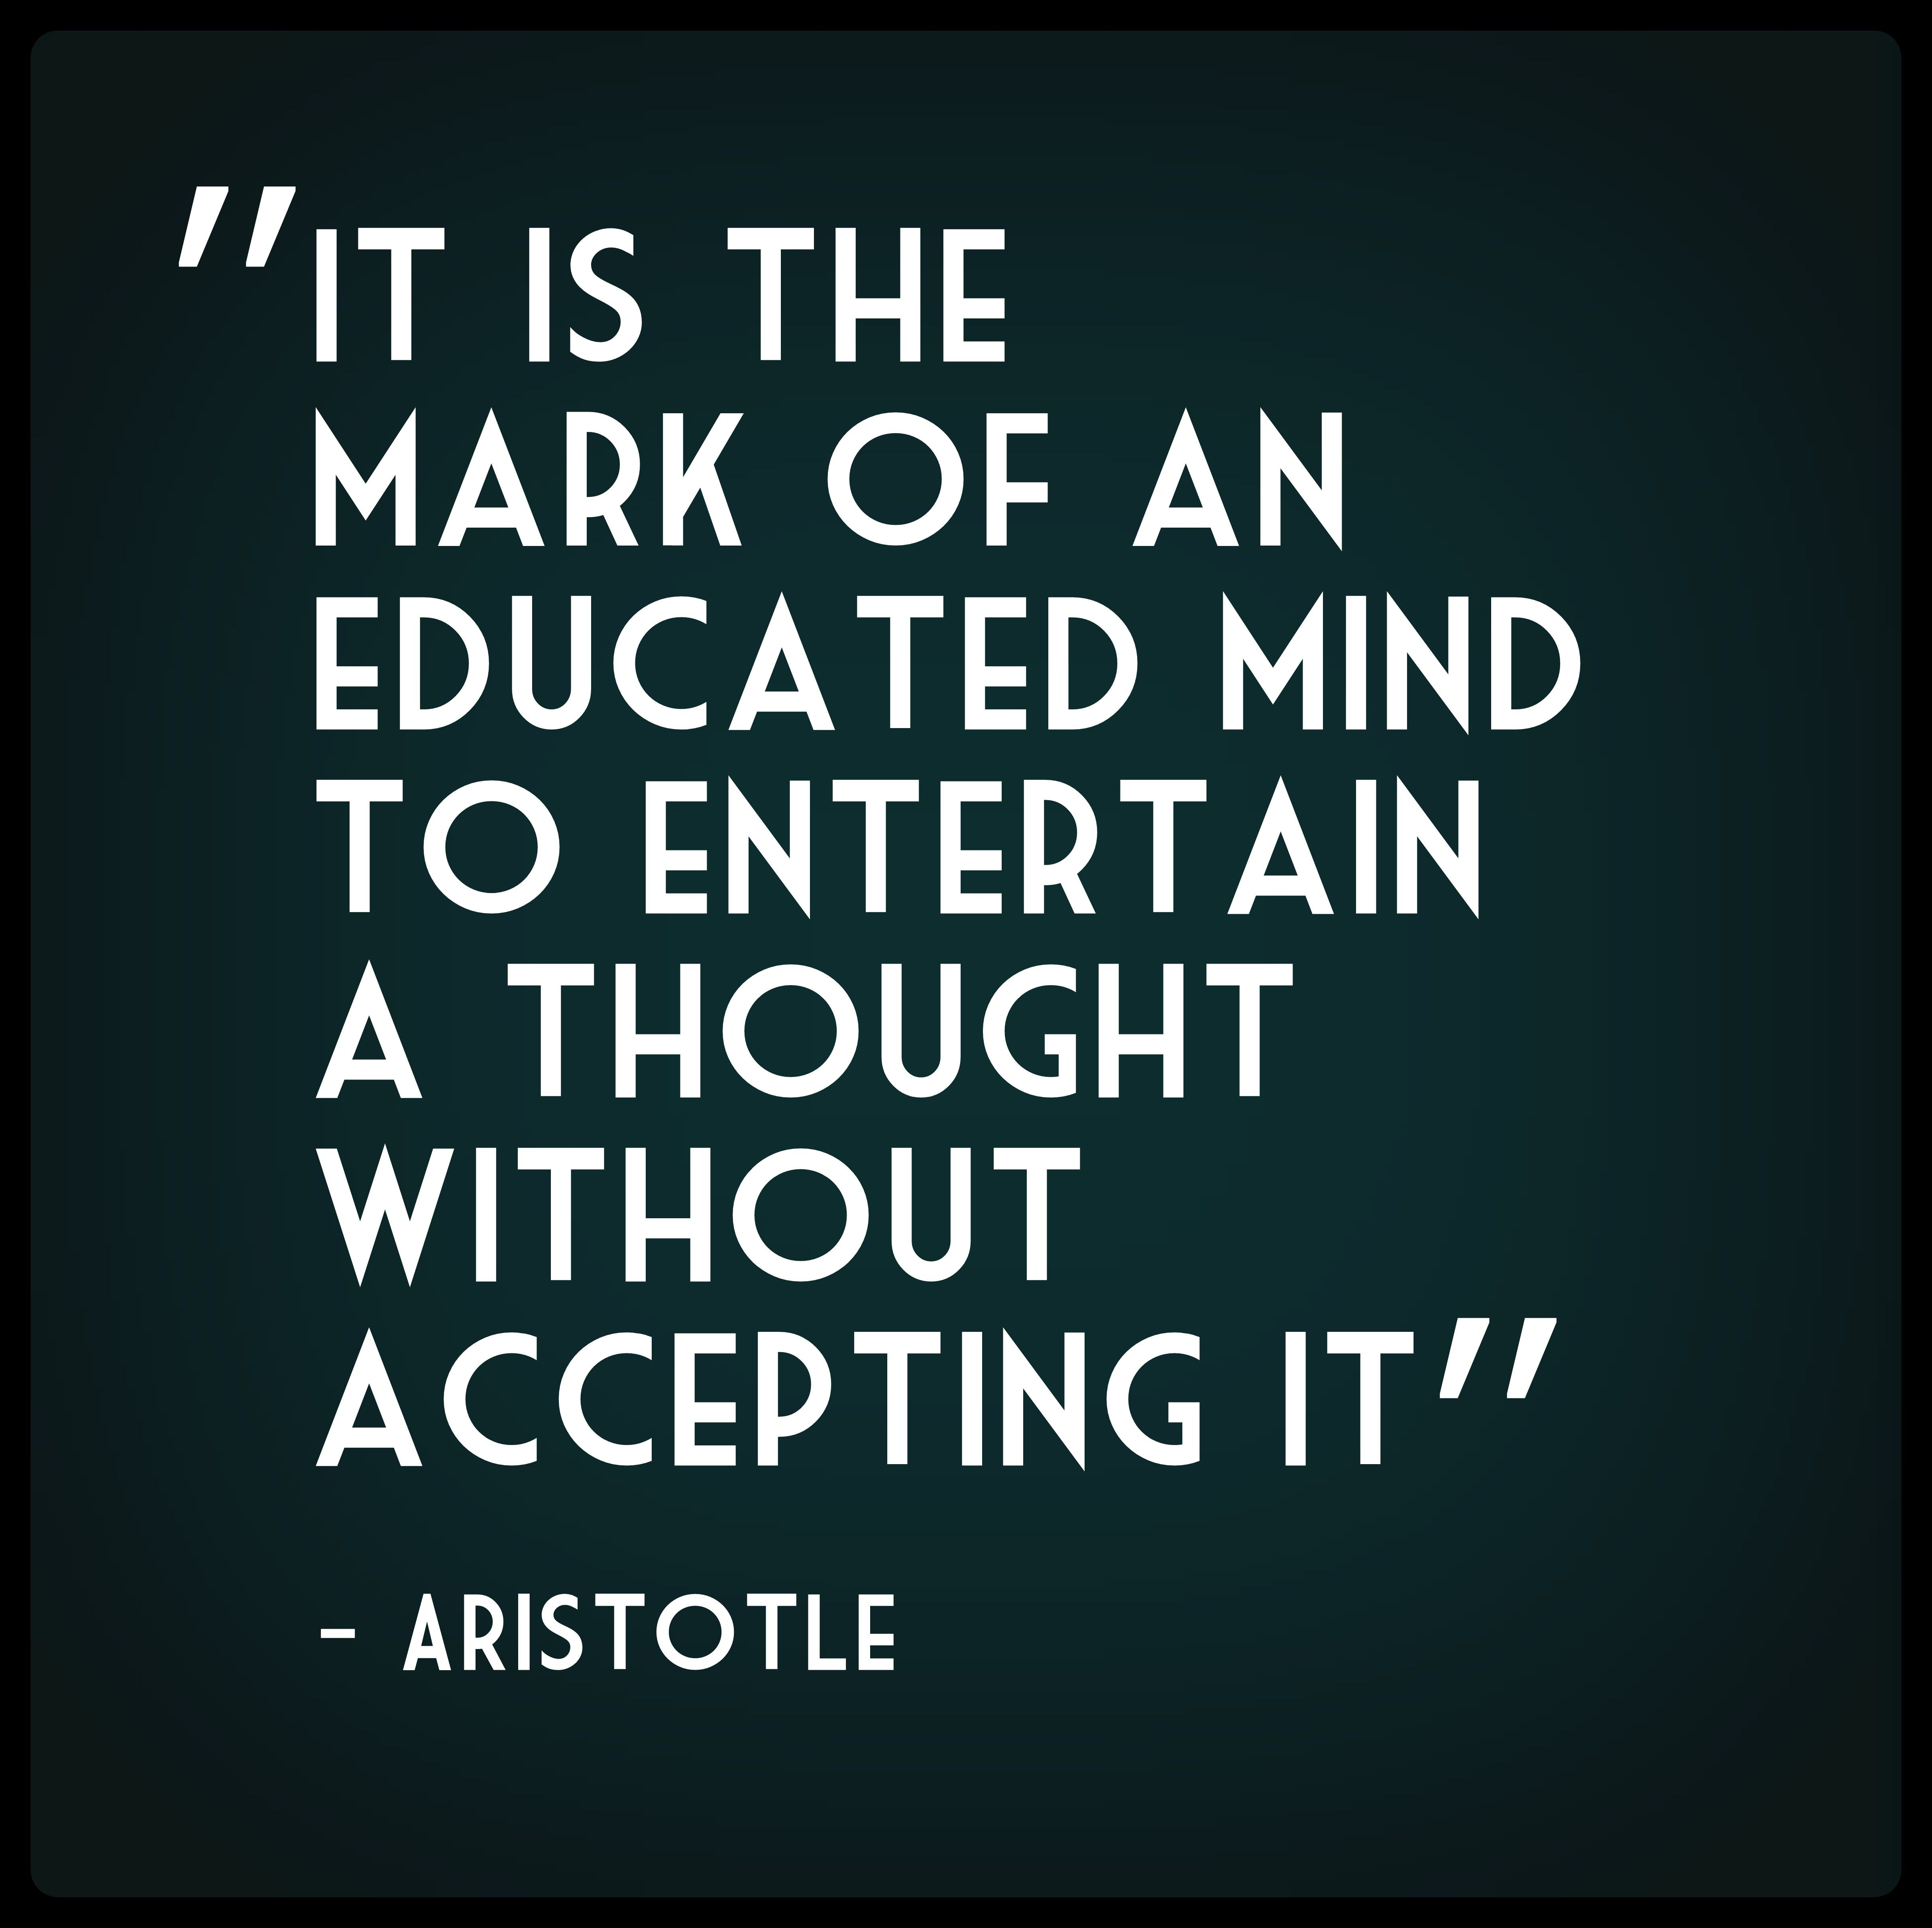 """It is the mark of an educated mind to entertain a thought without  accepting it."" Aristotle #quote #education #aristotle. """